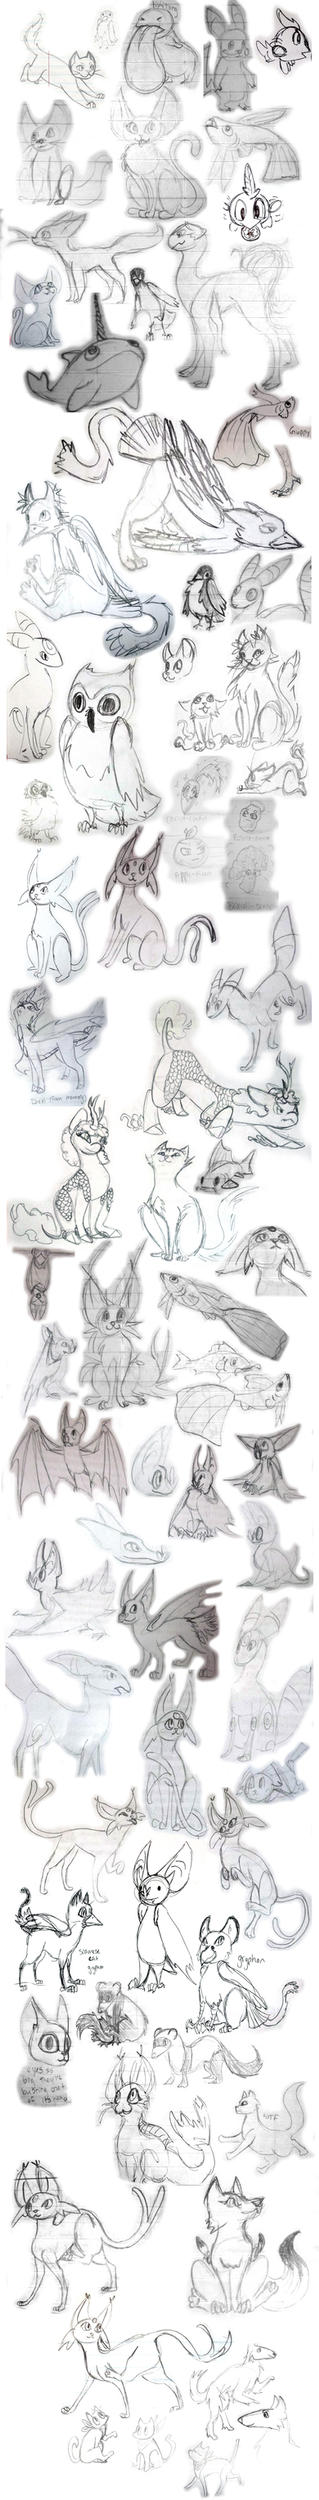 Critter sketchdump 2015 by LadyKaltag